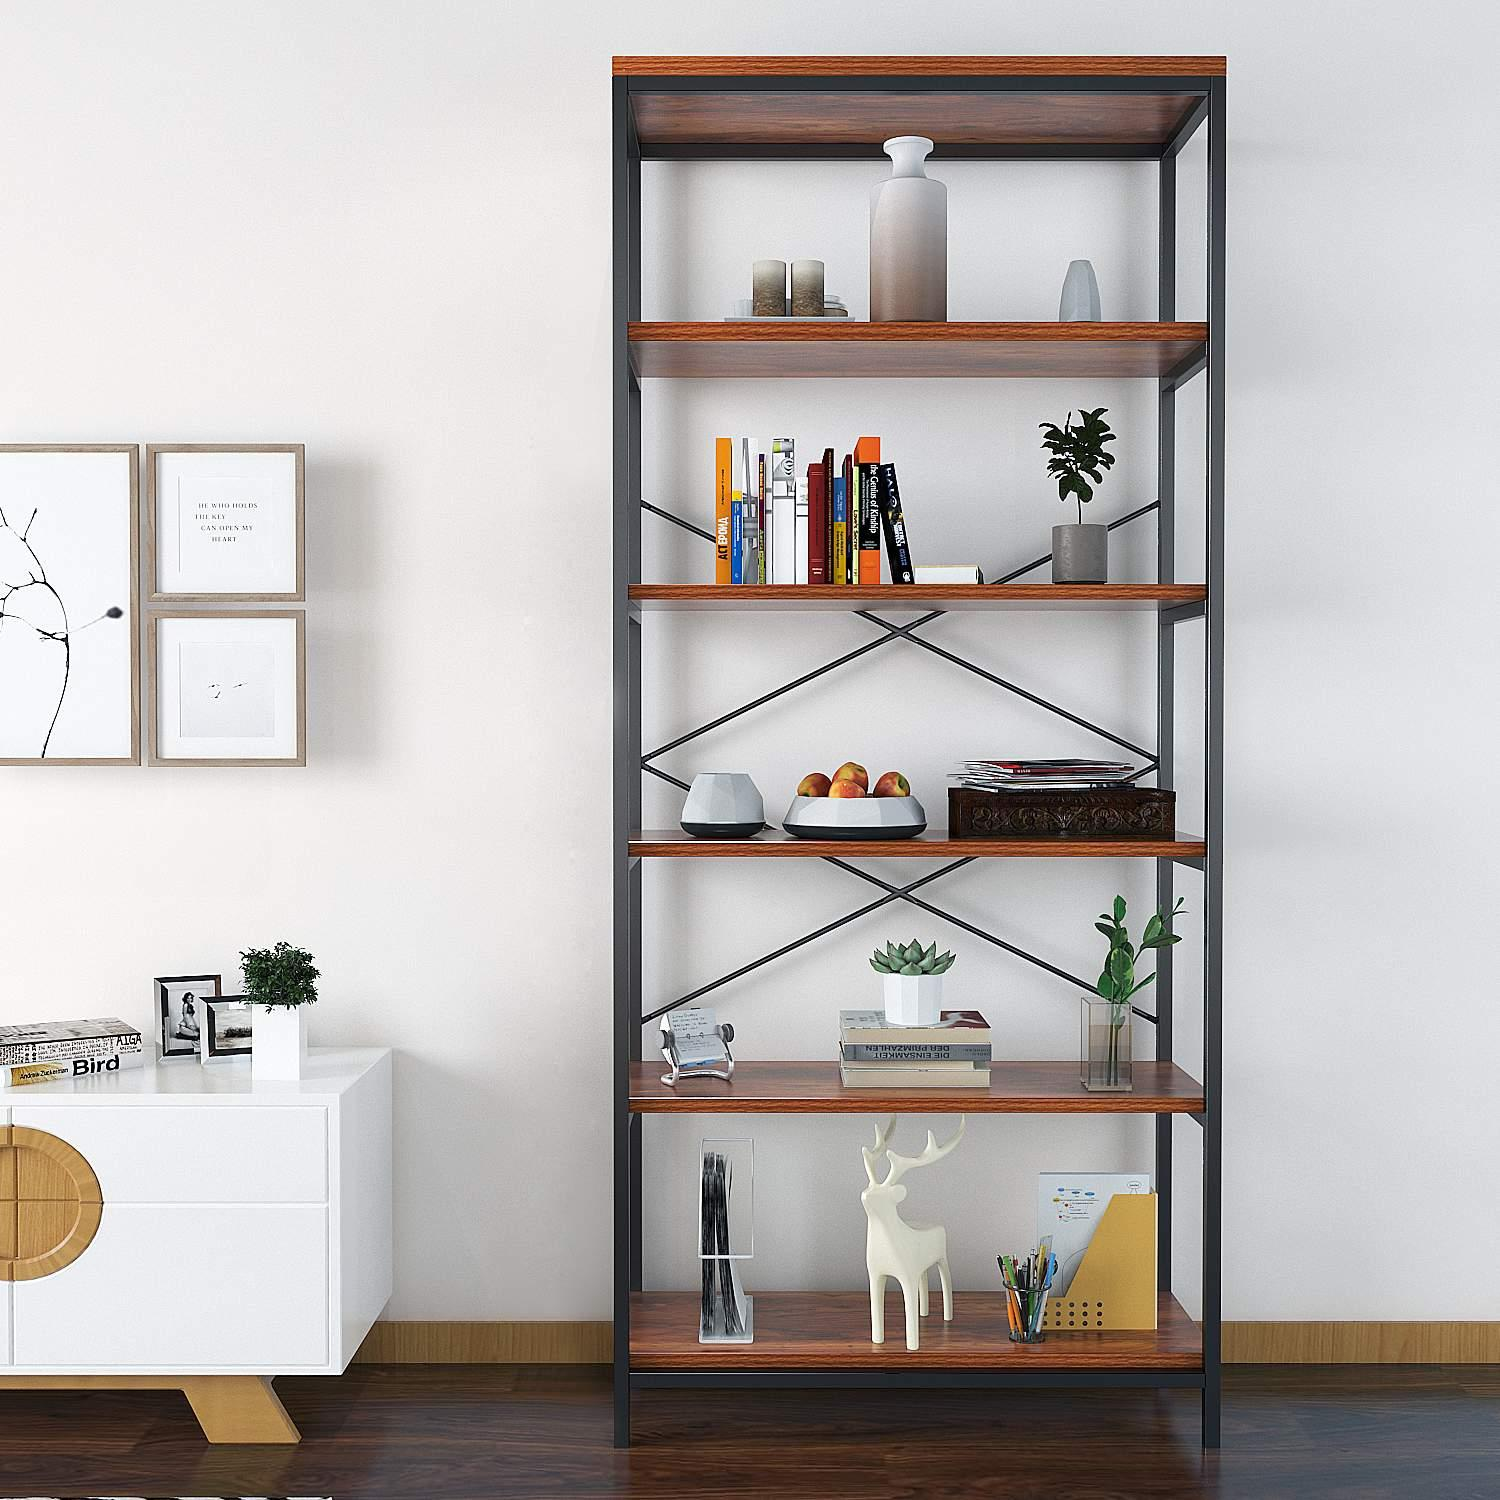 5-Shelf Industrial Wooden Style Bookcase and Shelves, Free Standing Storage shelf units